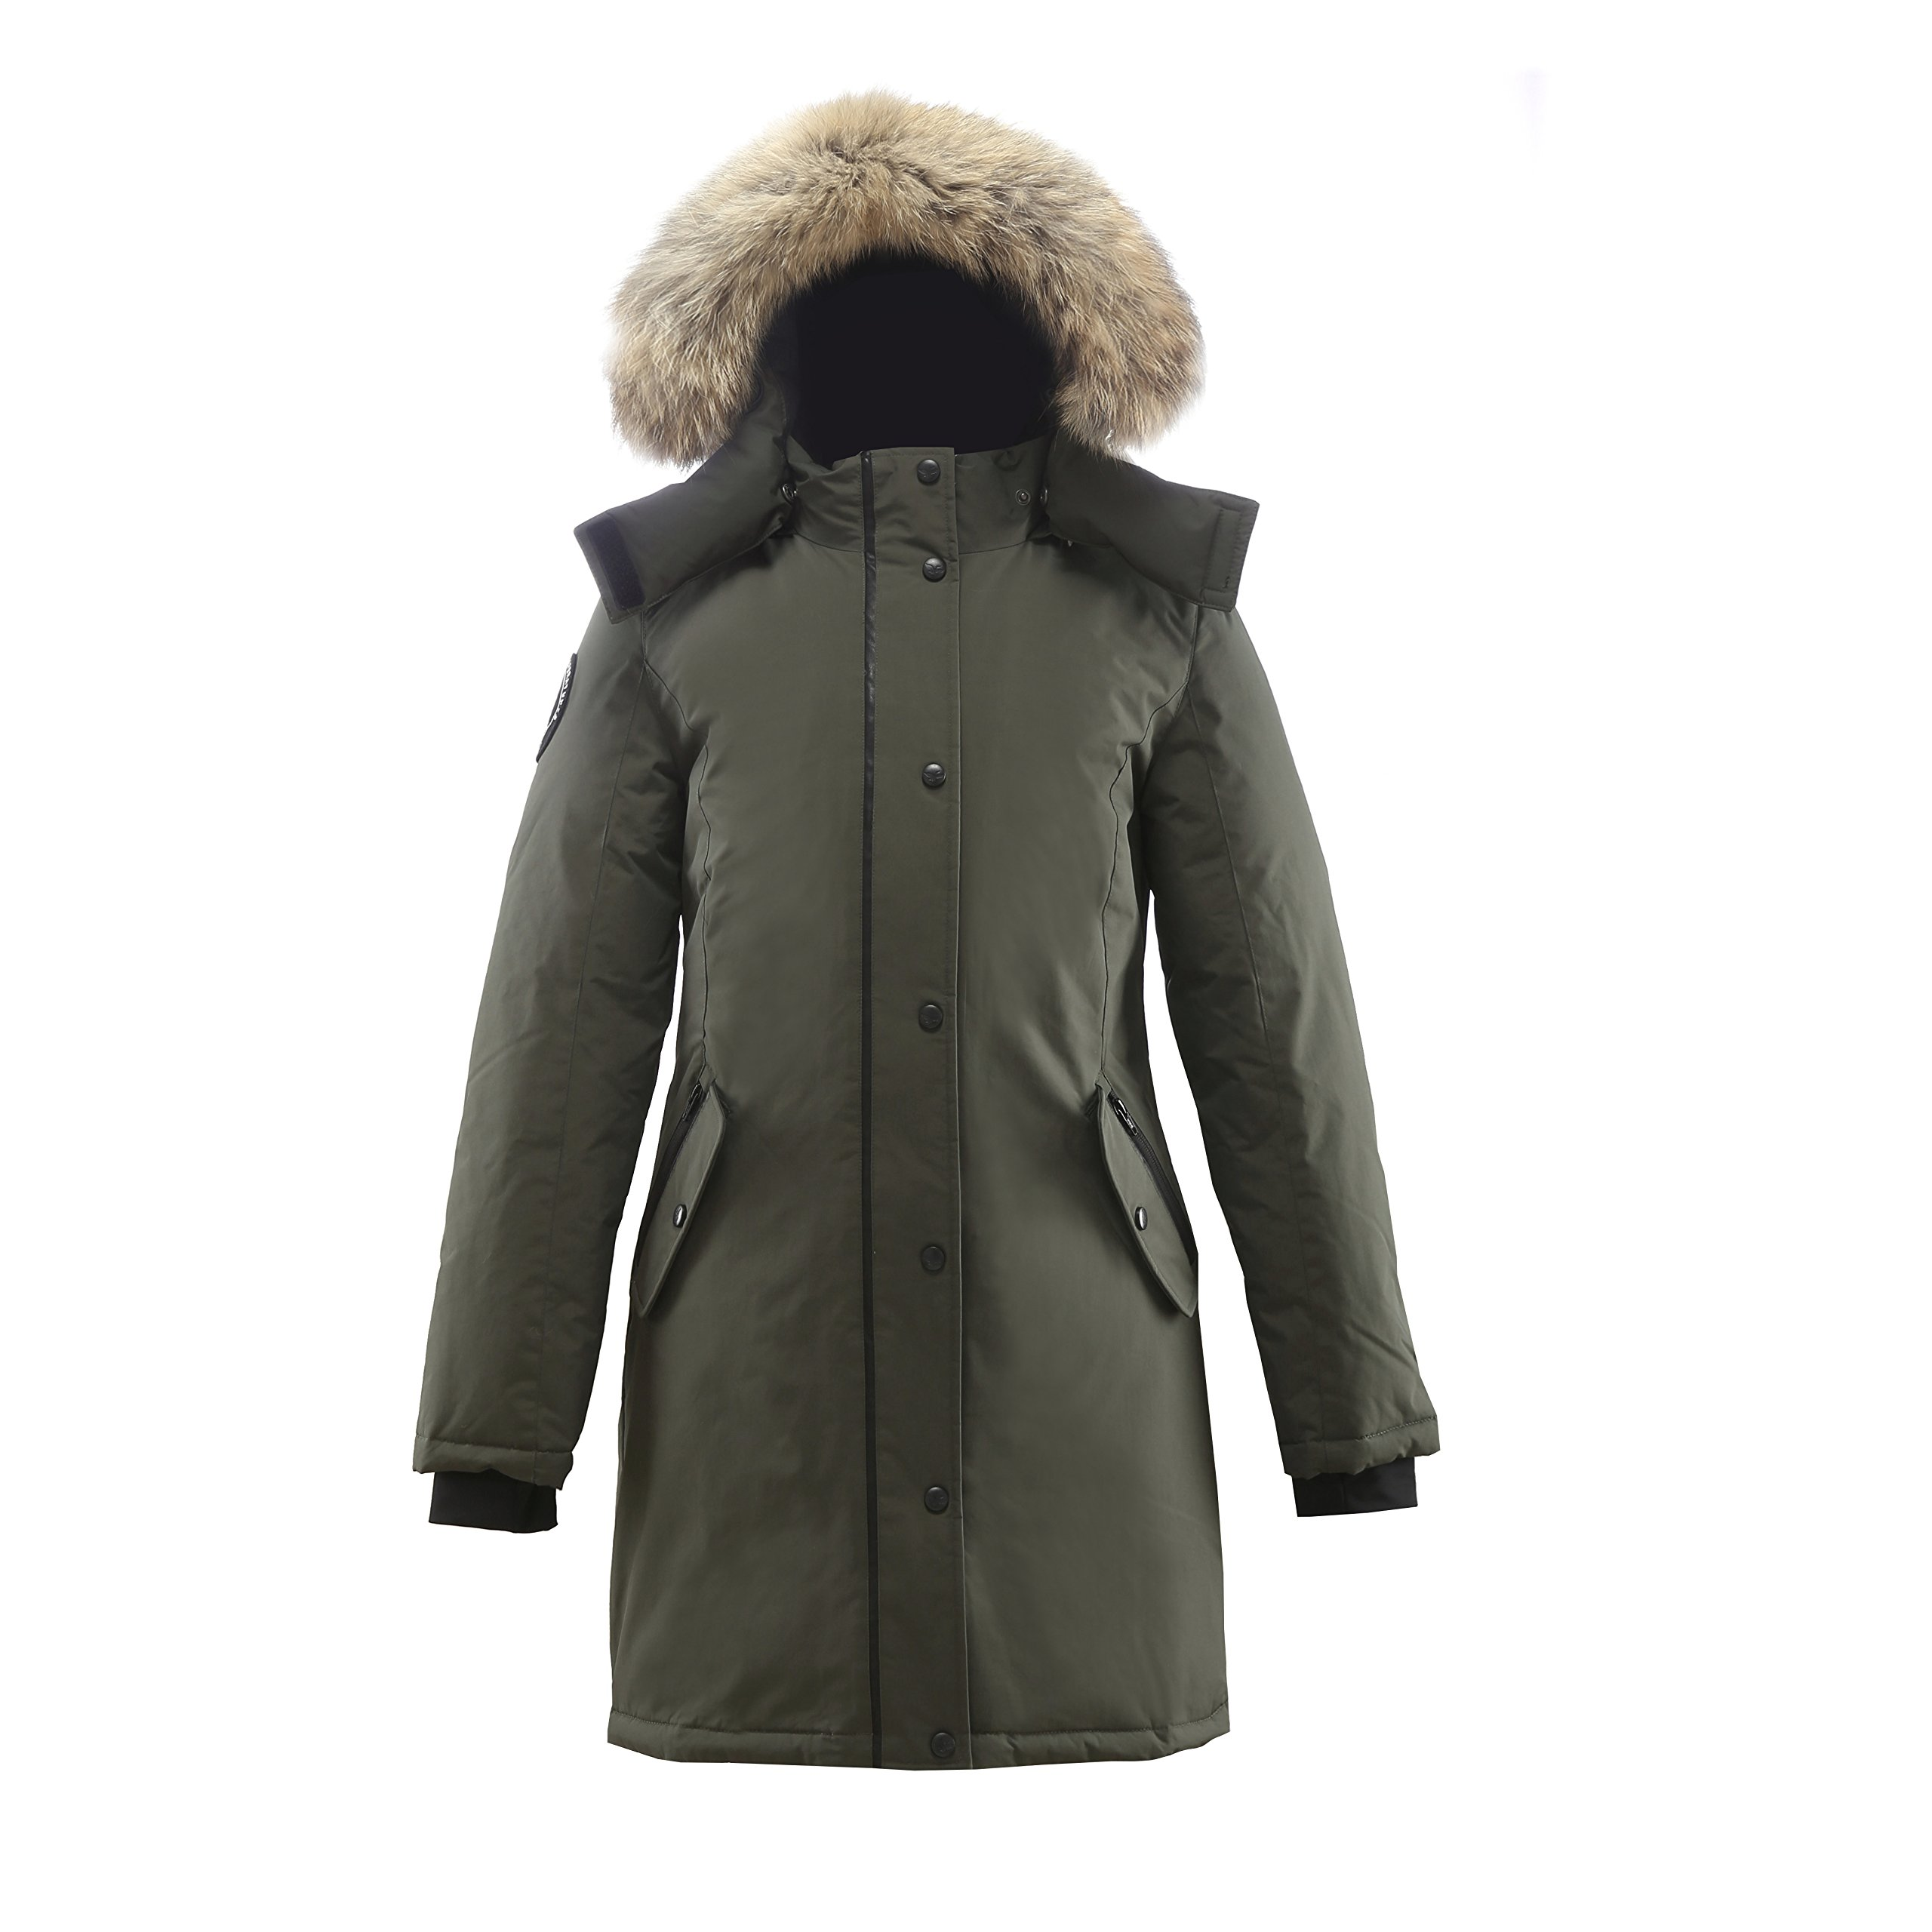 Triple F.A.T. Goose Alistair Womens Hooded Arctic Parka With Real Coyote Fur (Medium, Olive)